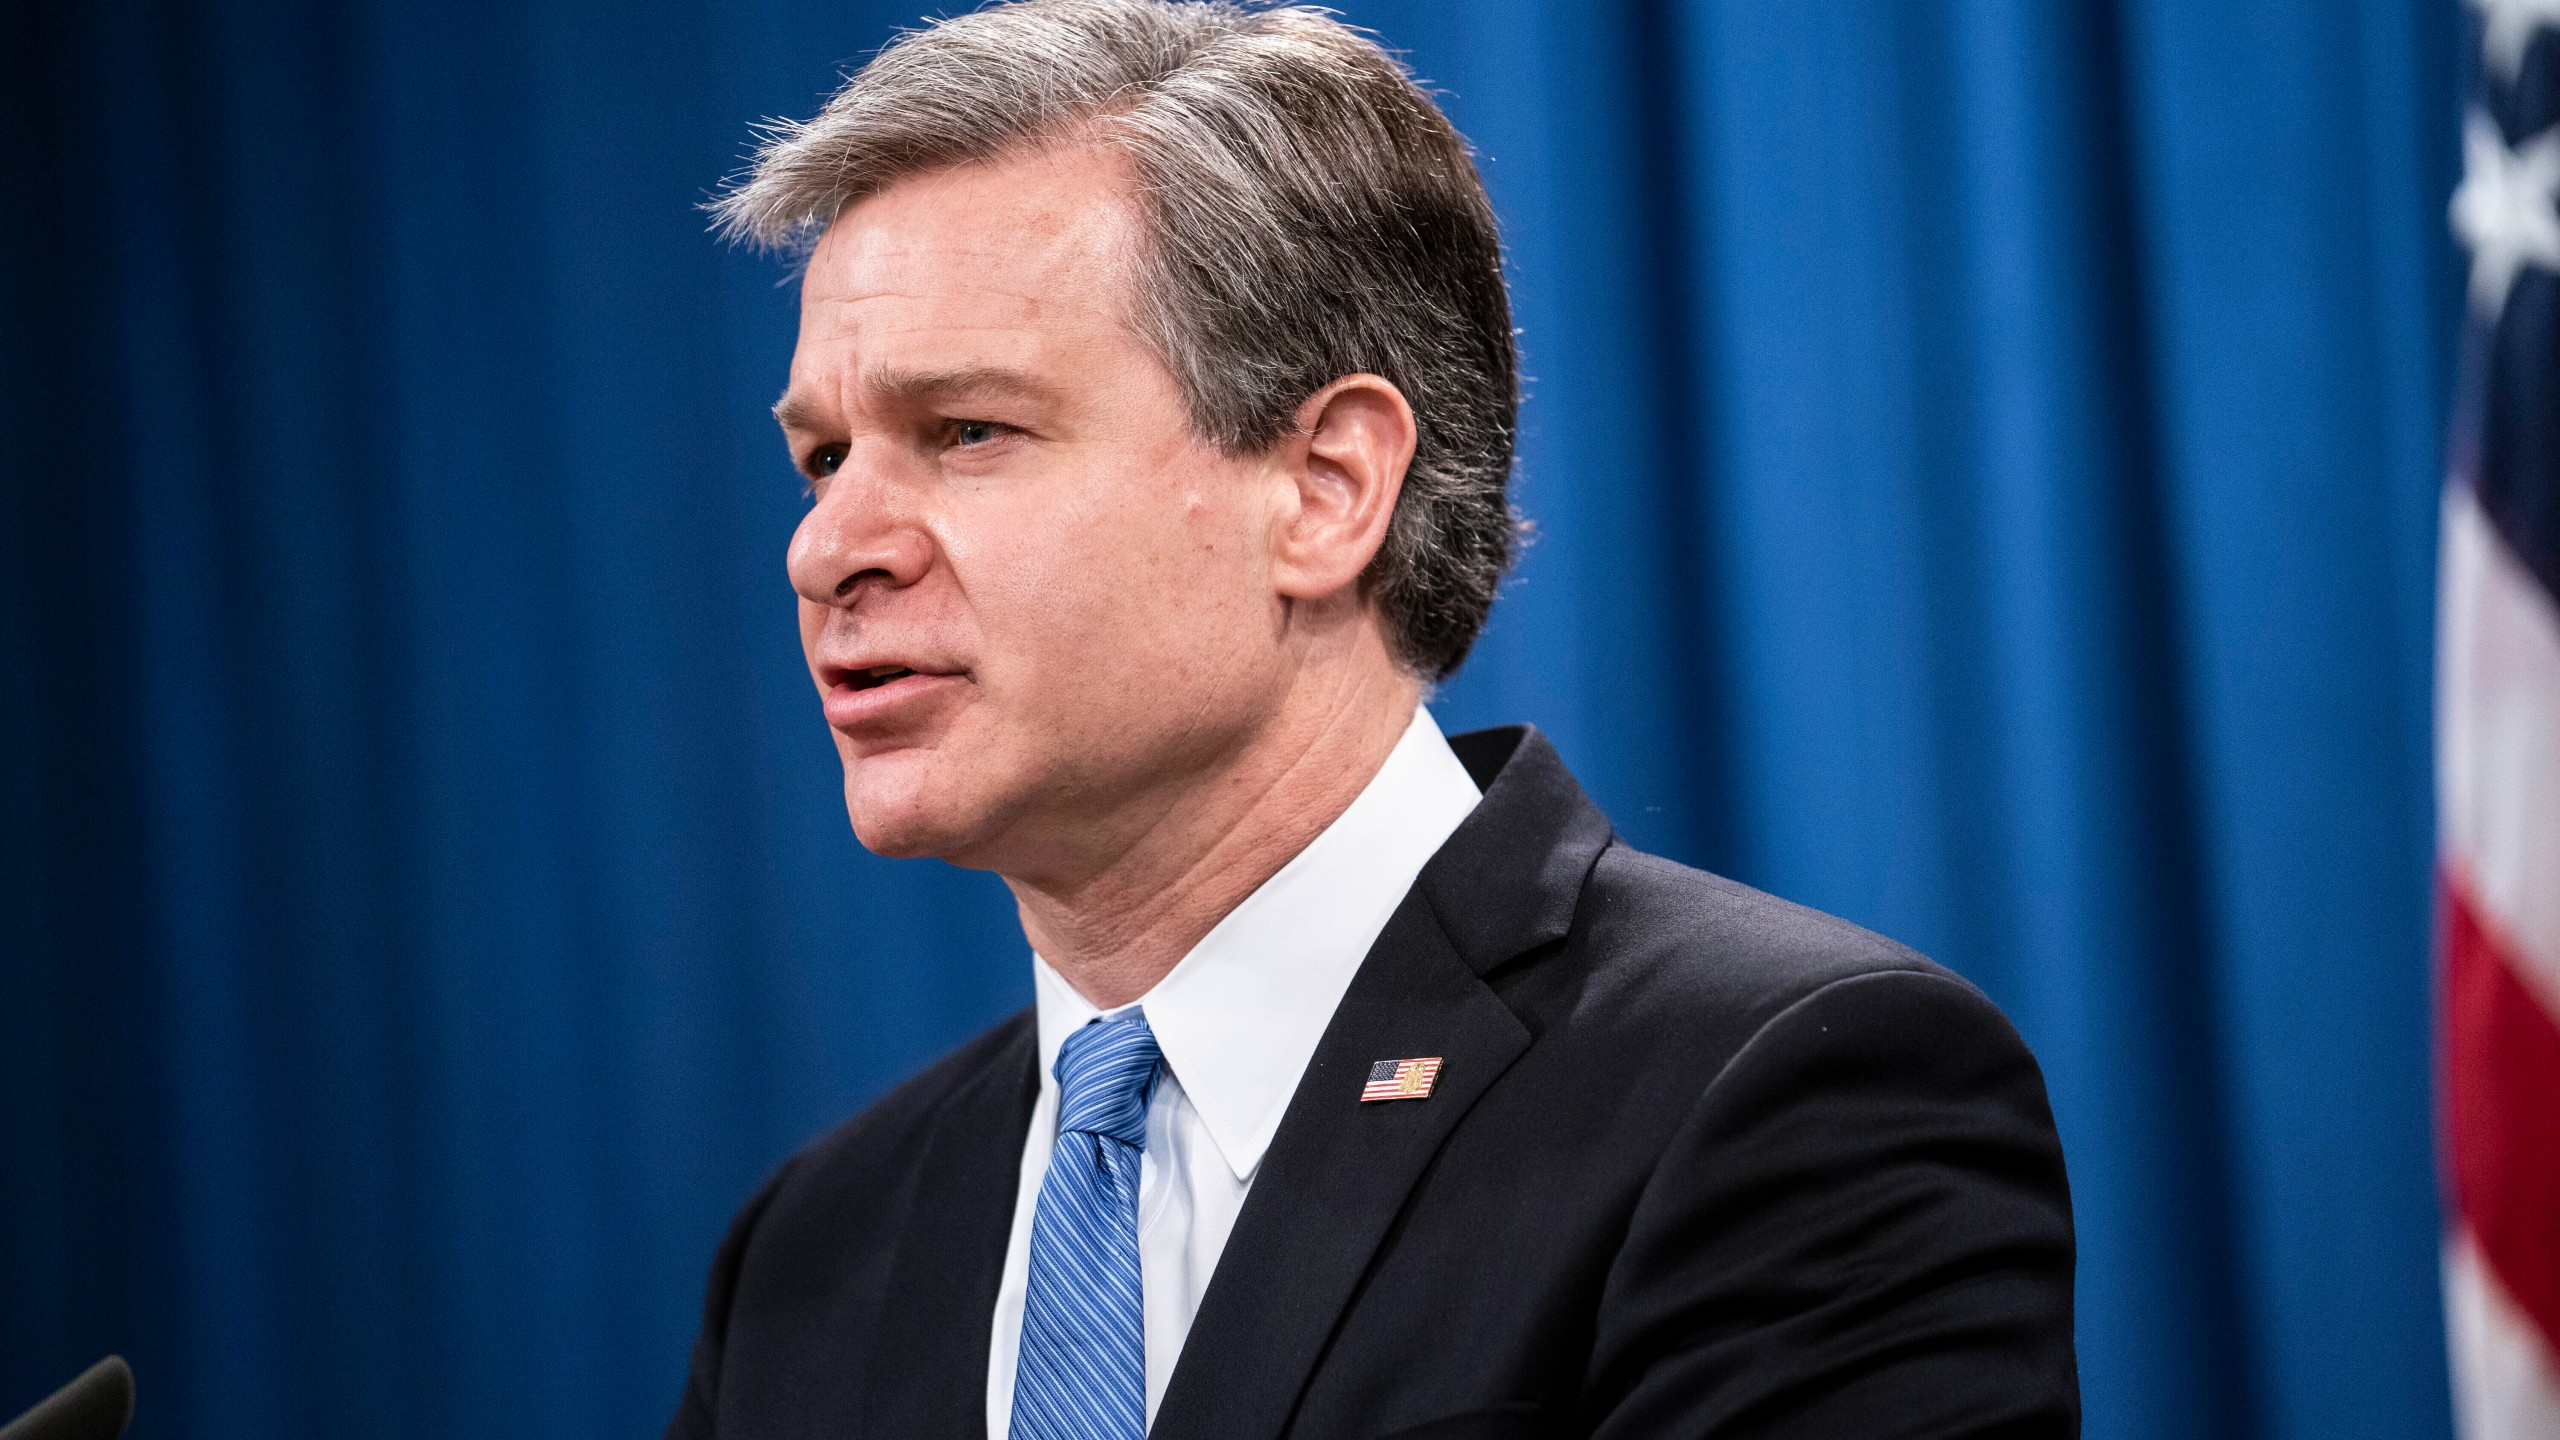 In this Oct. 28, 2020, file photo, FBI Director Christopher Wray speaks during a virtual news conference at the Department of Justice in Washington. (Sarah Silbiger/Pool via AP)